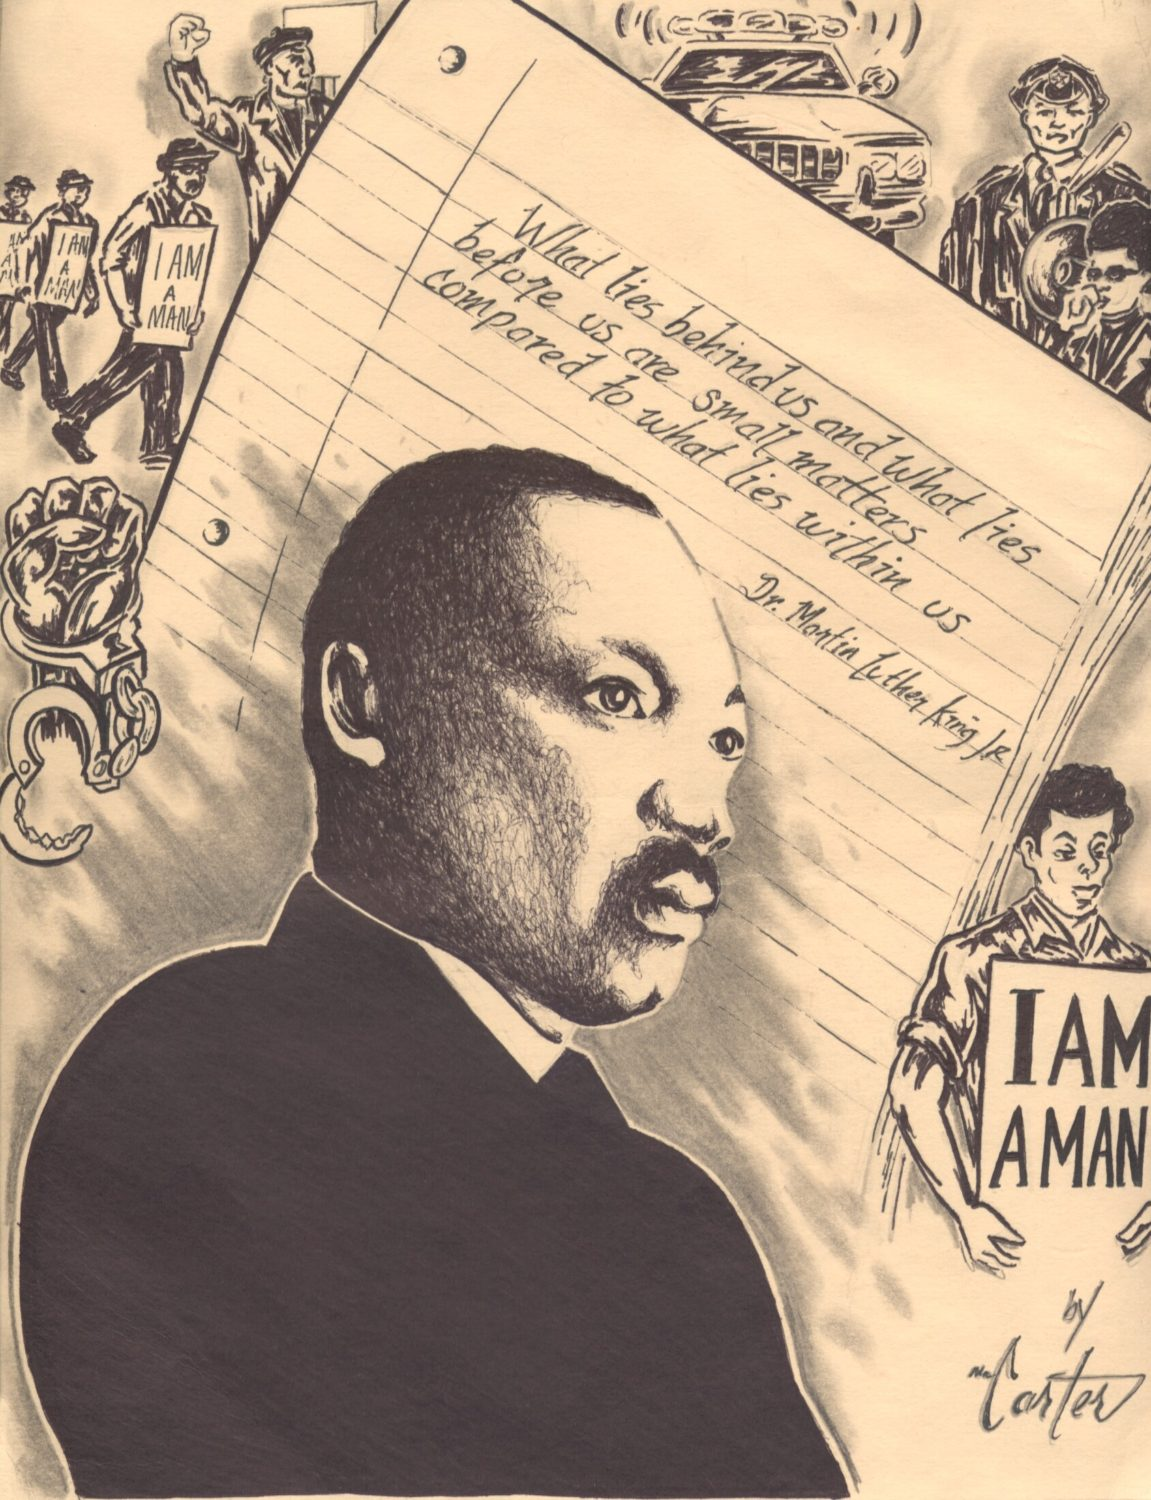 Dr.-Martin-Luther-King-Jr.-art-by-Billy-Carter-SFCJ-0720, I am a proud member of Dr. Martin Luther King Jr.'s International Association for Creative Maladjustment. I am writing about Treasure Island, Local News & Views